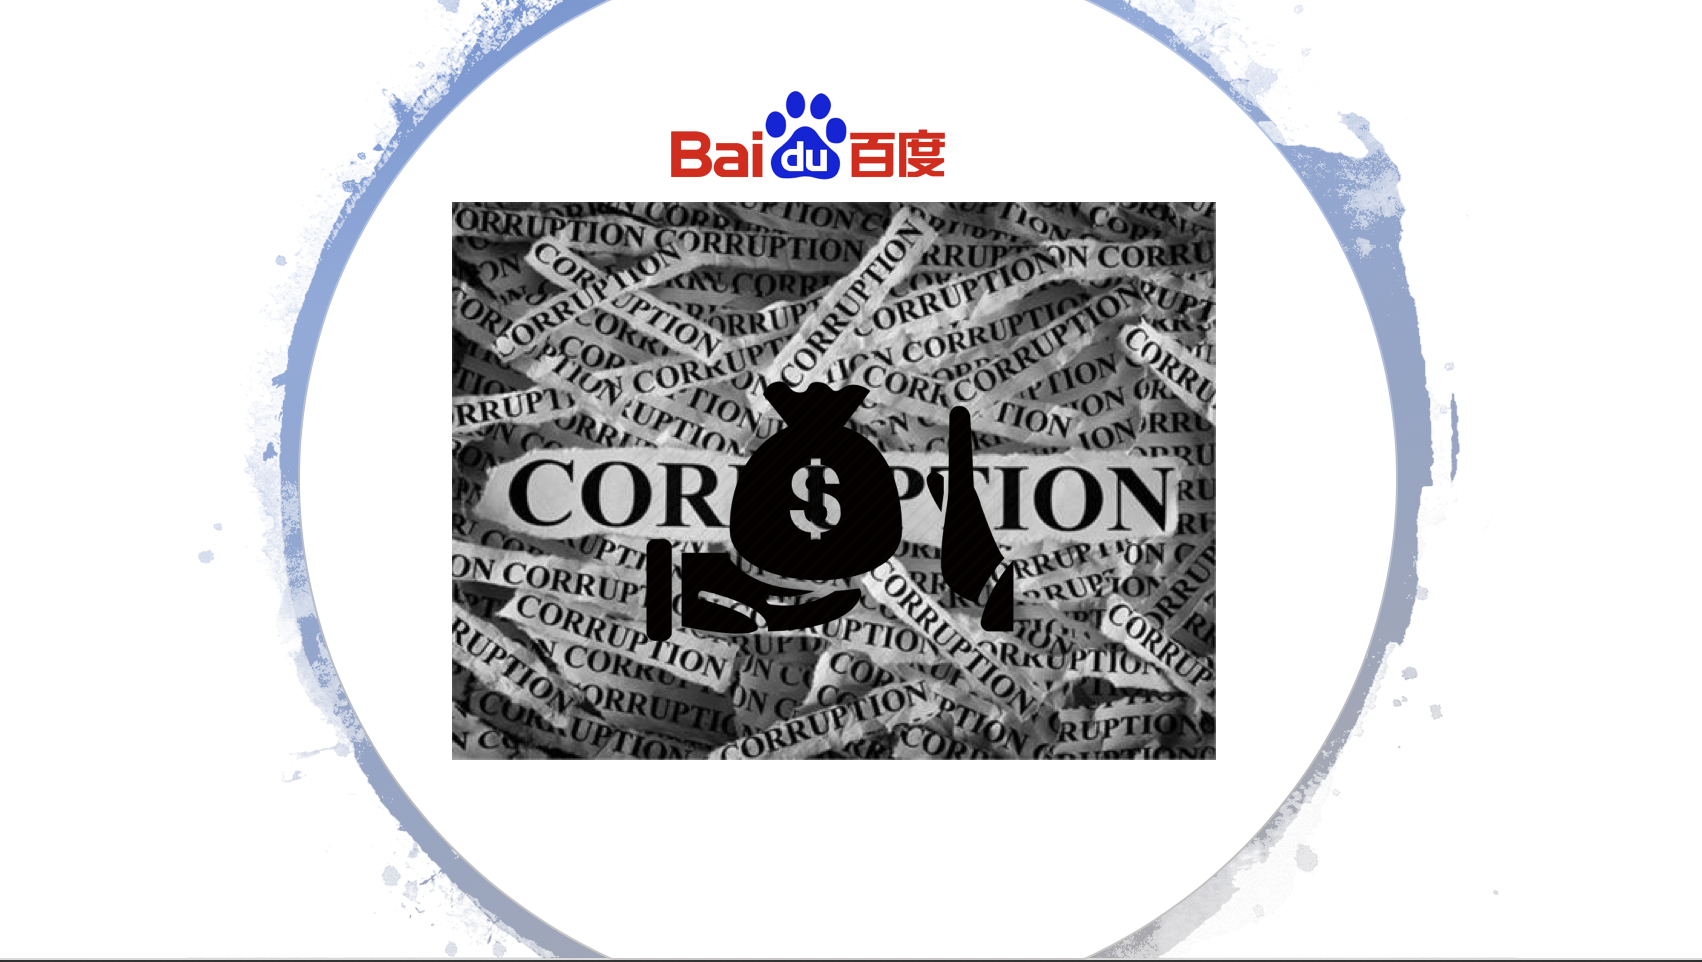 Baidu's 14 Employees Fired for Bribes, Violating Confidentiality